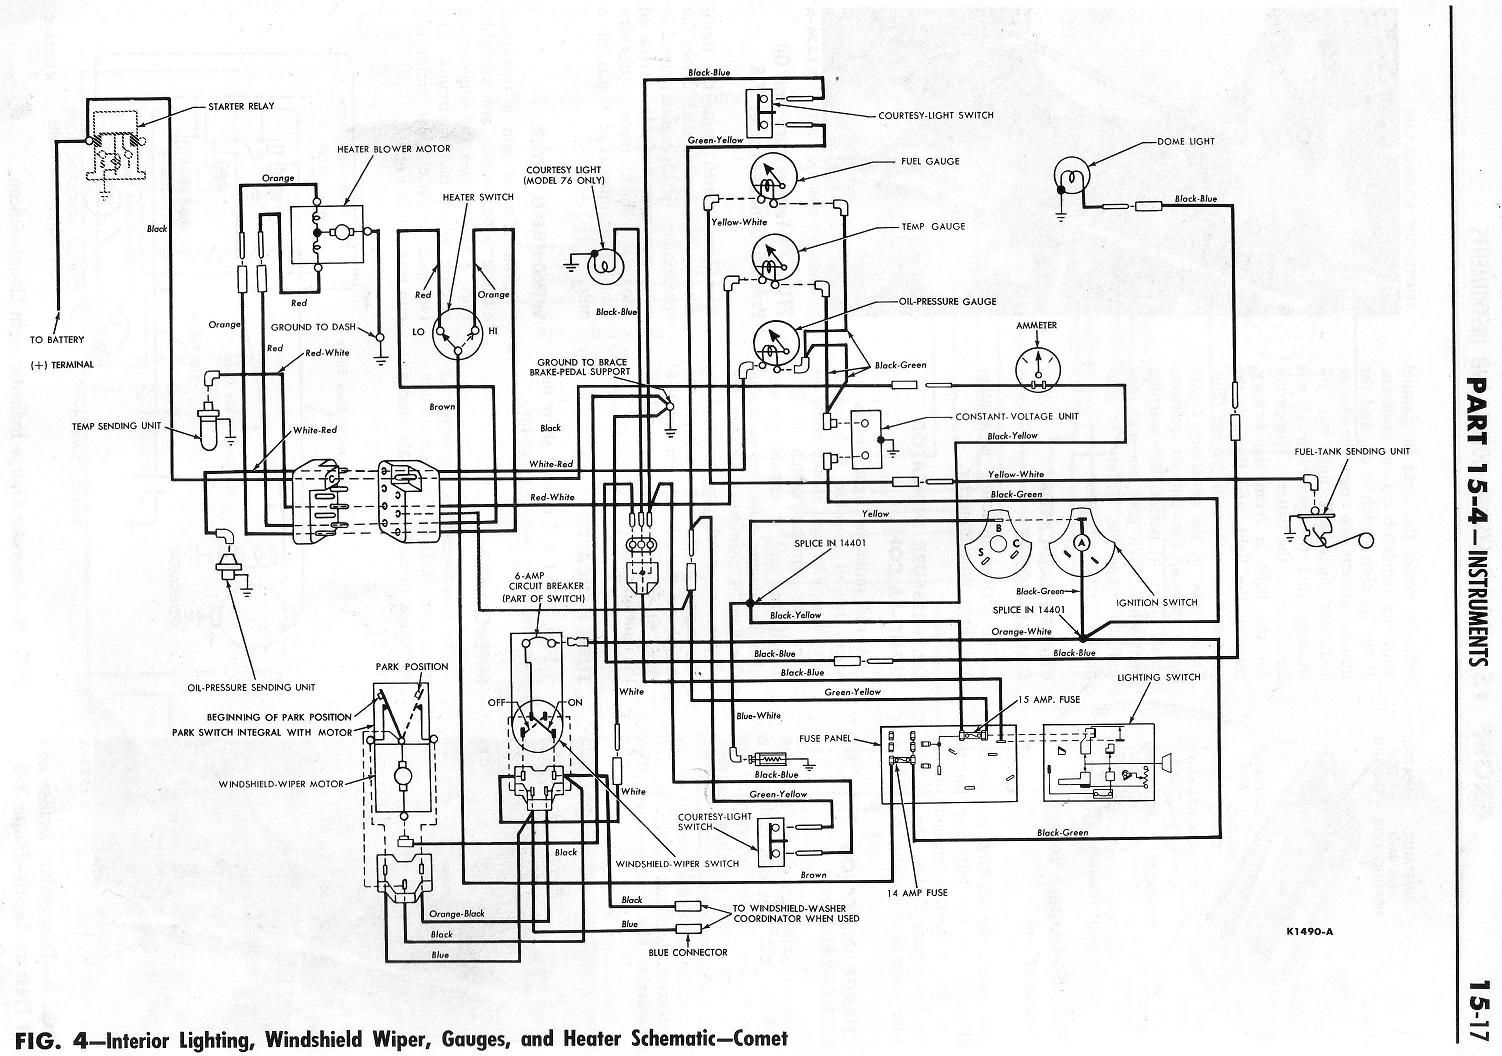 1964 Ranchero Wiring Diagrams, 1964 ranchero wiring diagrams rowand wiring  diagrams. wiring diagrams andscriptions of the various circuits seem to be  a rare thi… di 2020Pinterest